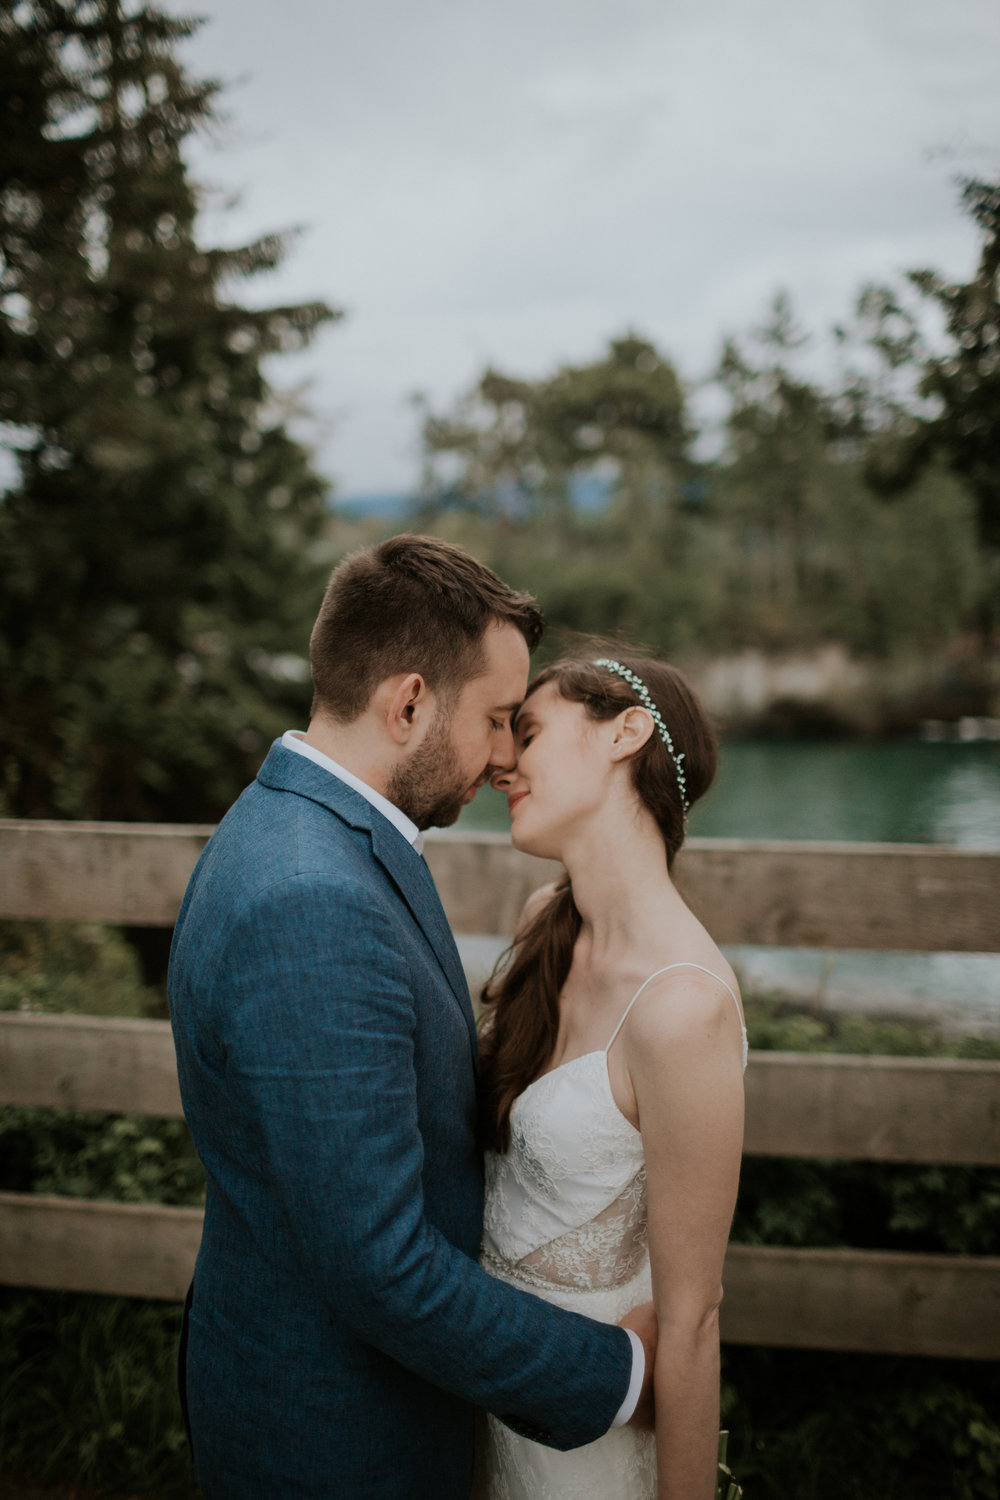 PNW-elopement-wedding-engagement-olympic national park-port angeles-hurricane ridge-lake crescent-kayla dawn photography- photographer-photography-kayladawnphoto-331.jpg